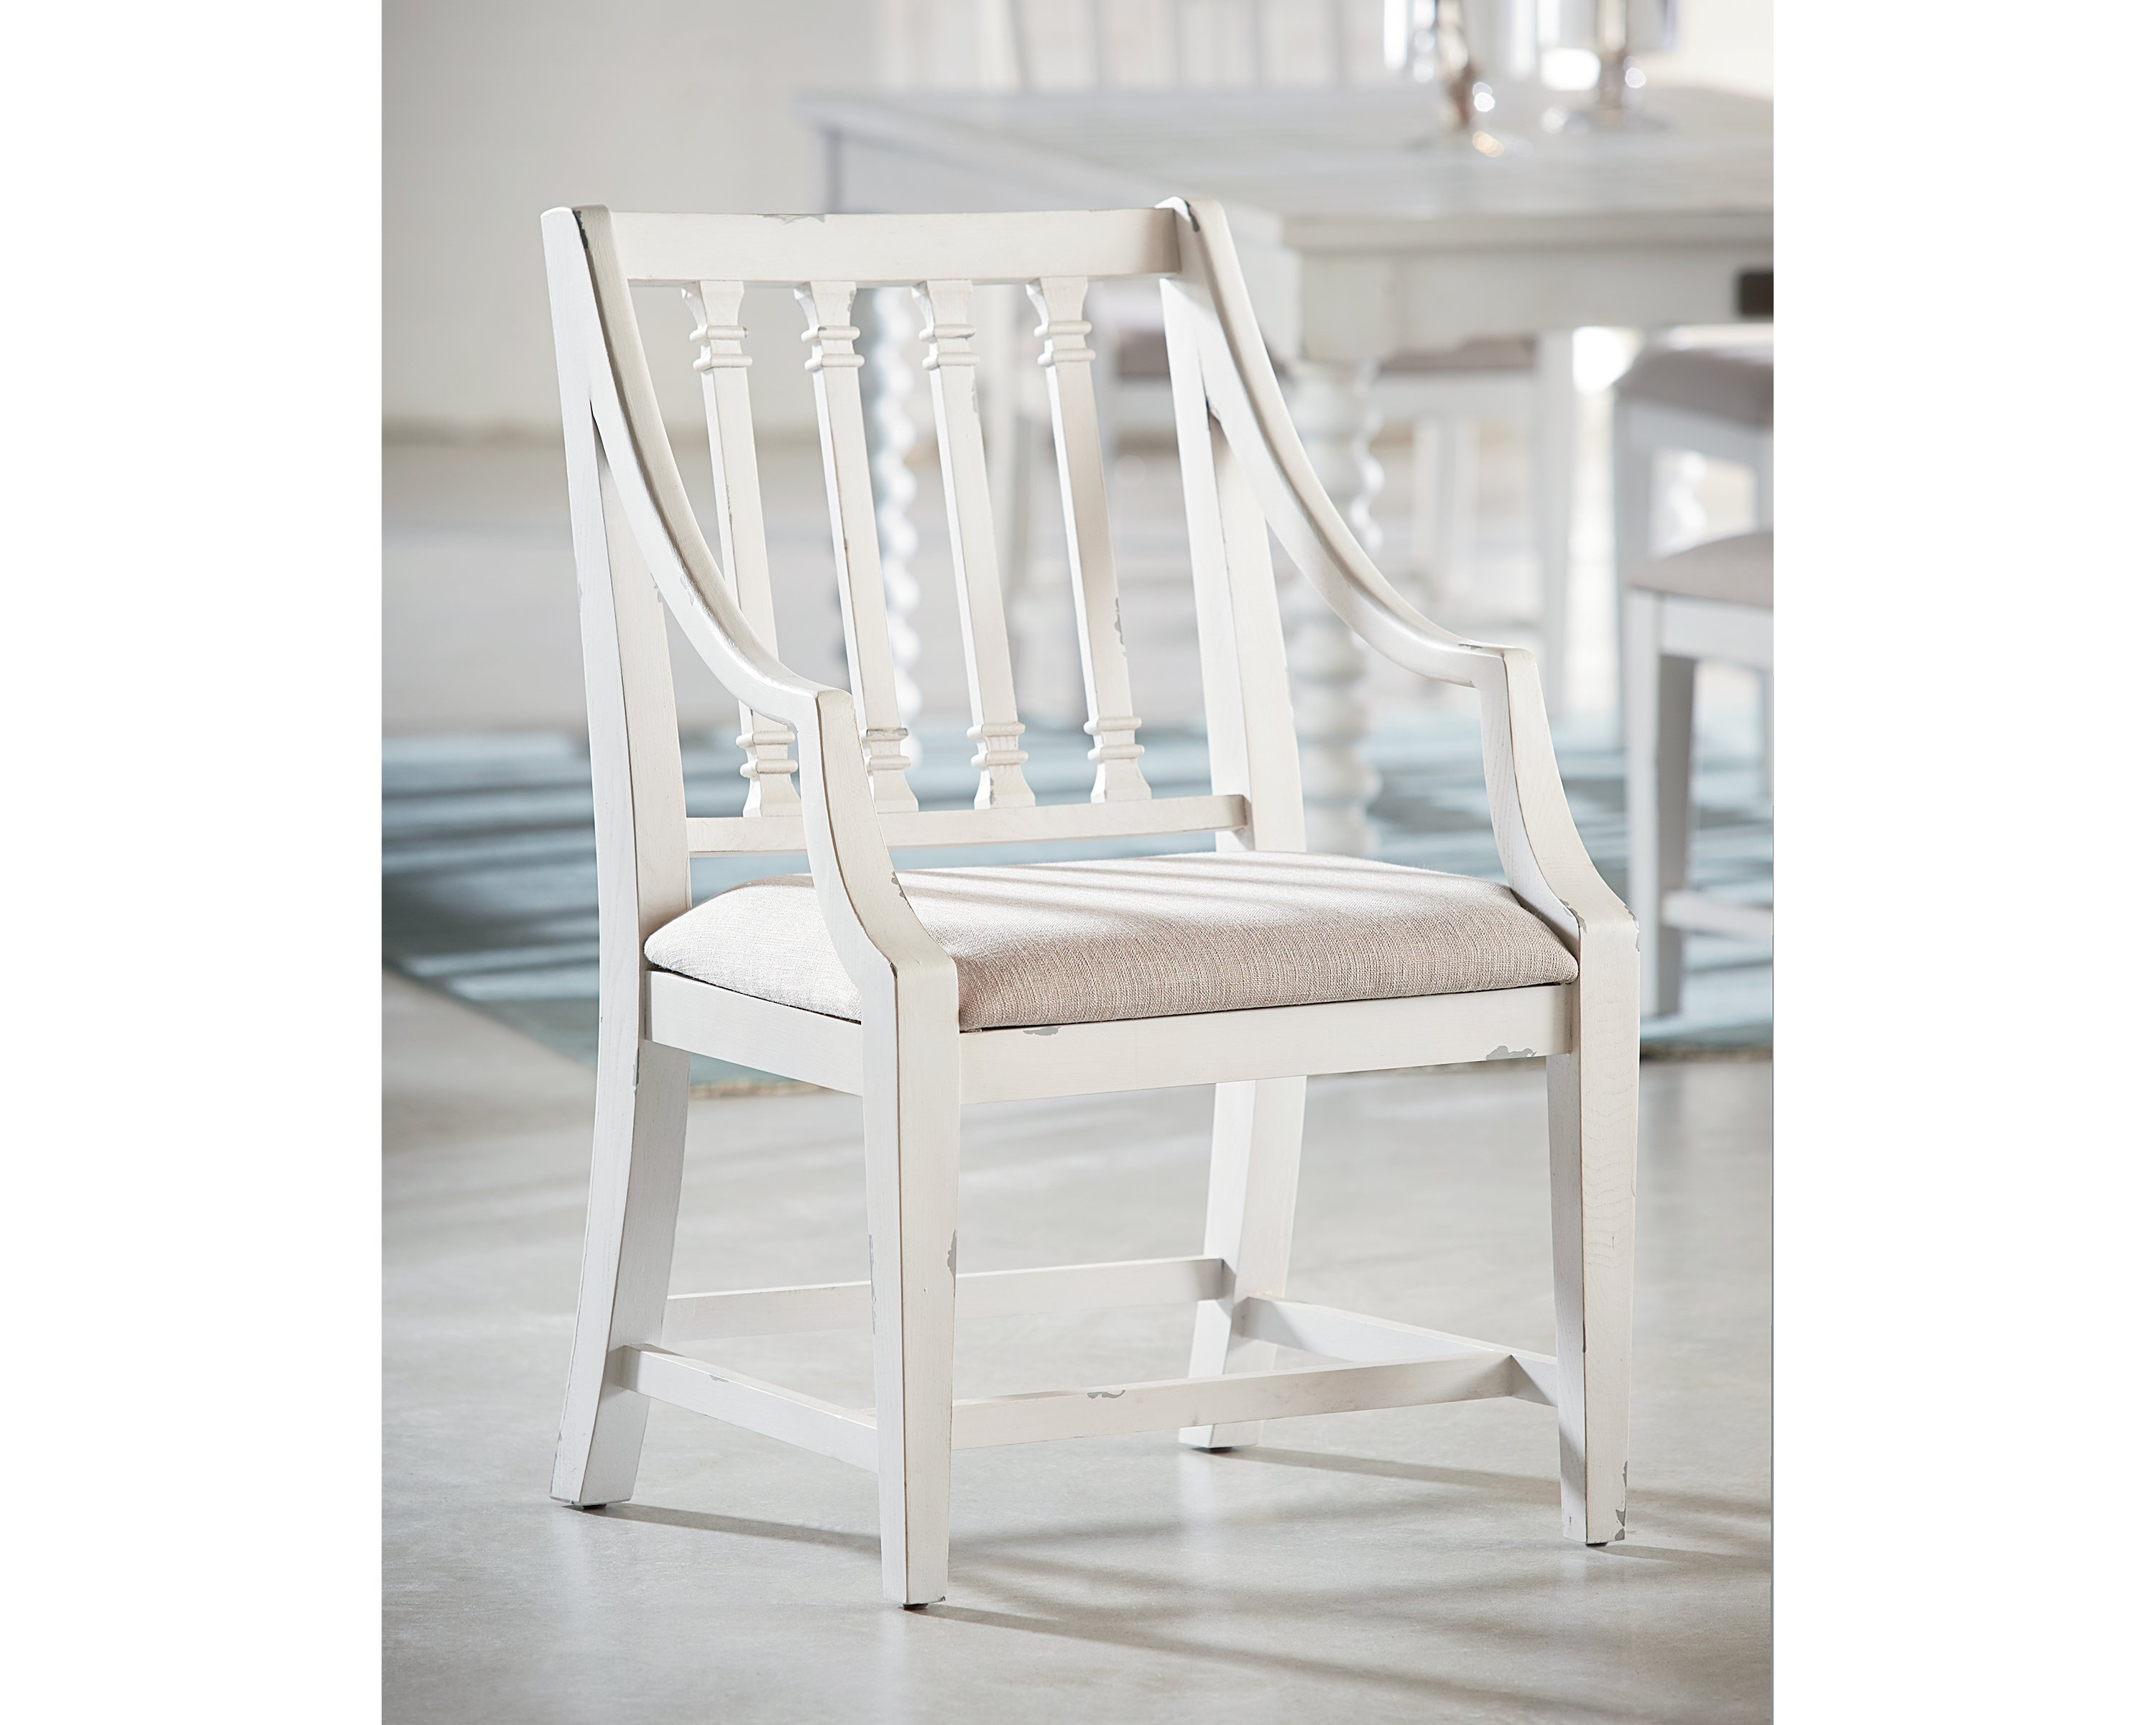 Magnolia Home Revival Jo's White Arm Chairs For Fashionable Revival Arm Chair – Magnolia Home (View 3 of 20)